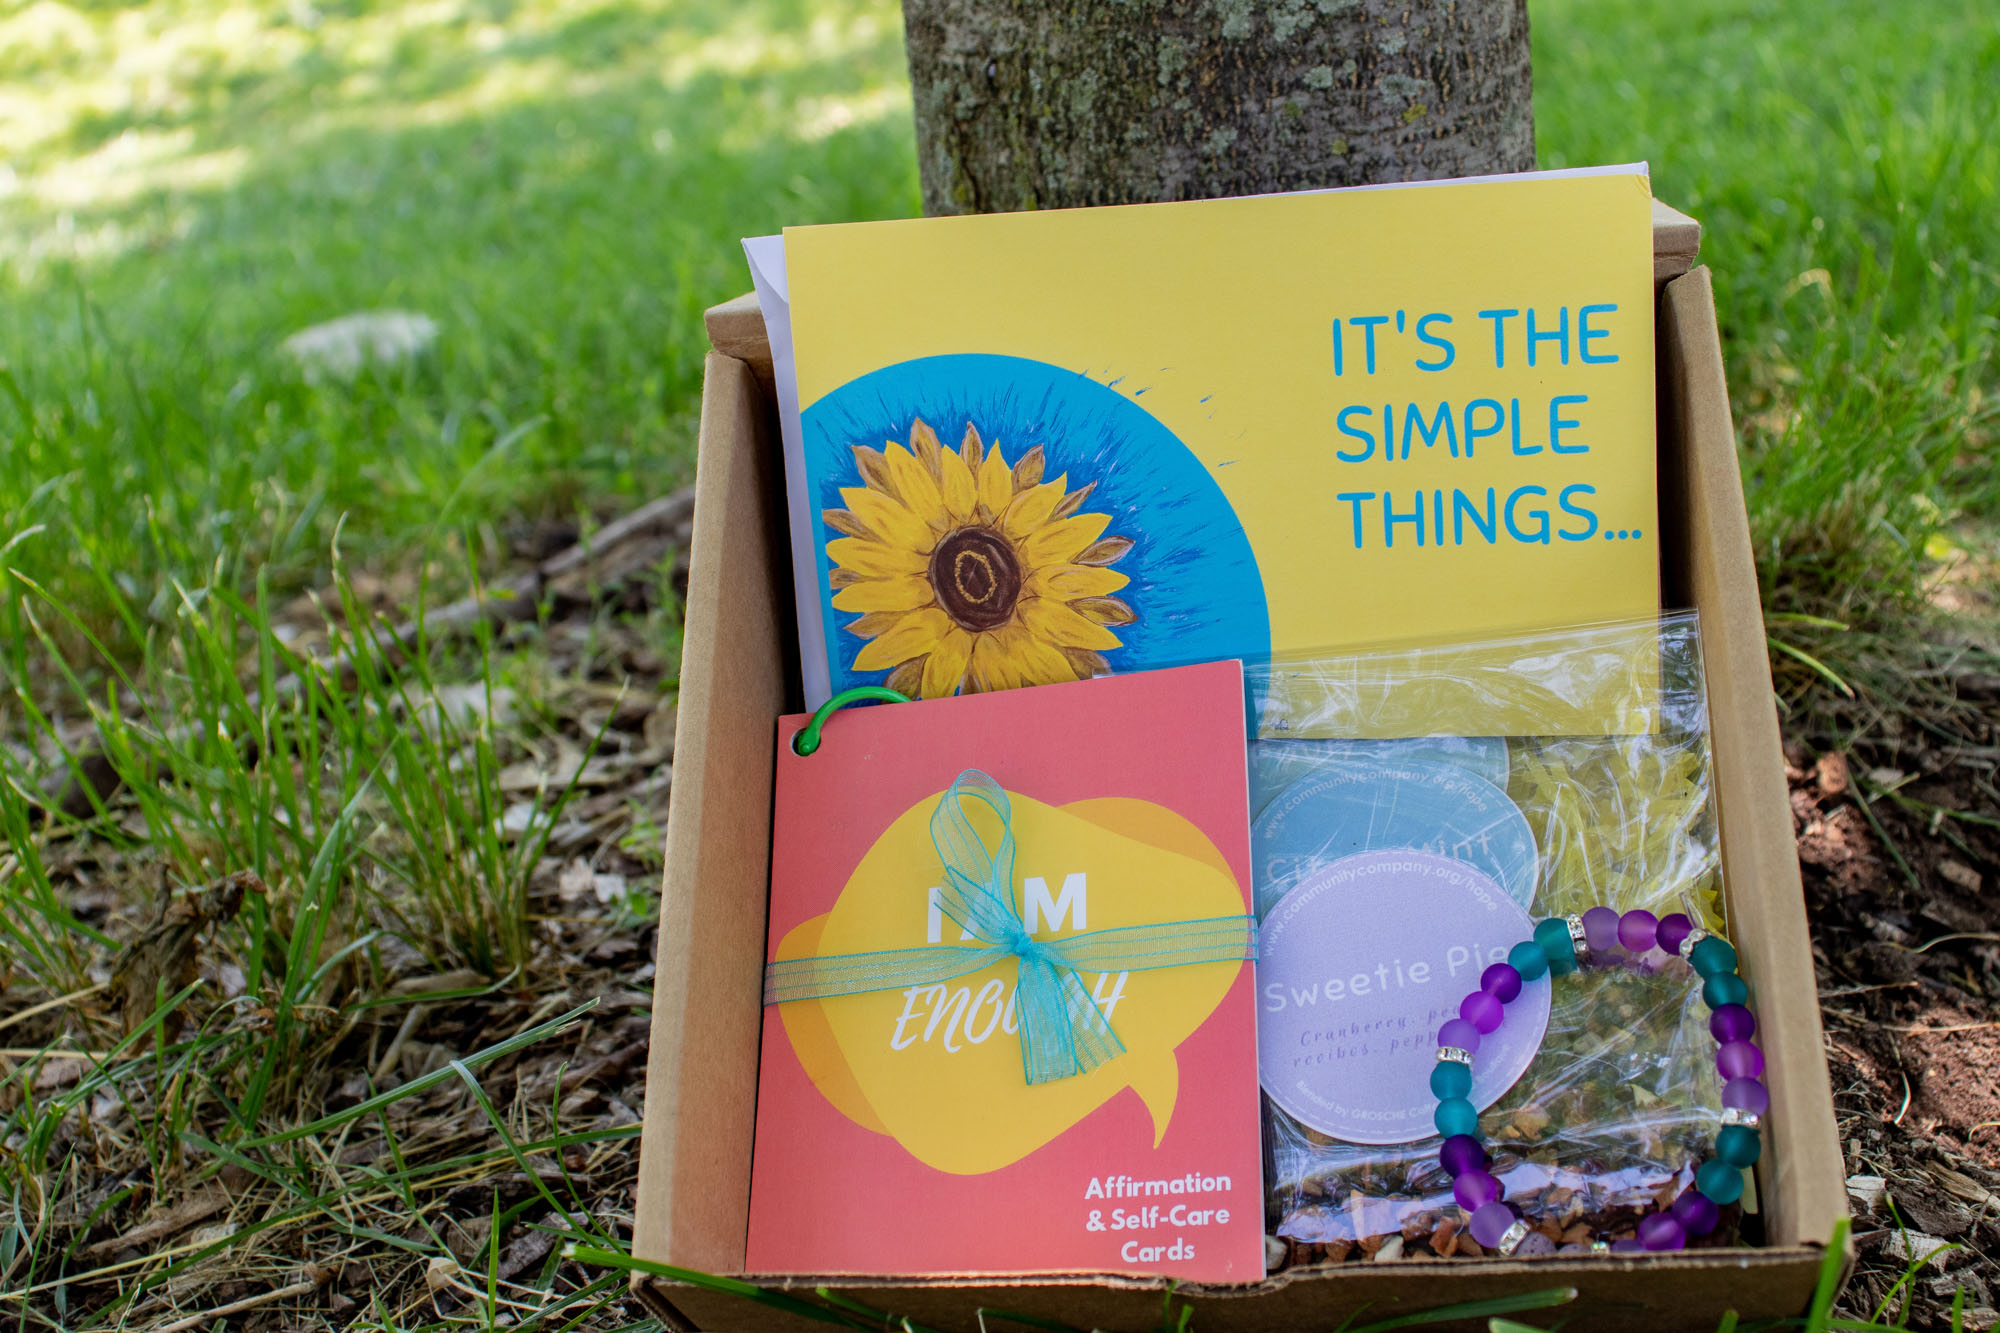 Purchase a Community Box to empower your community -